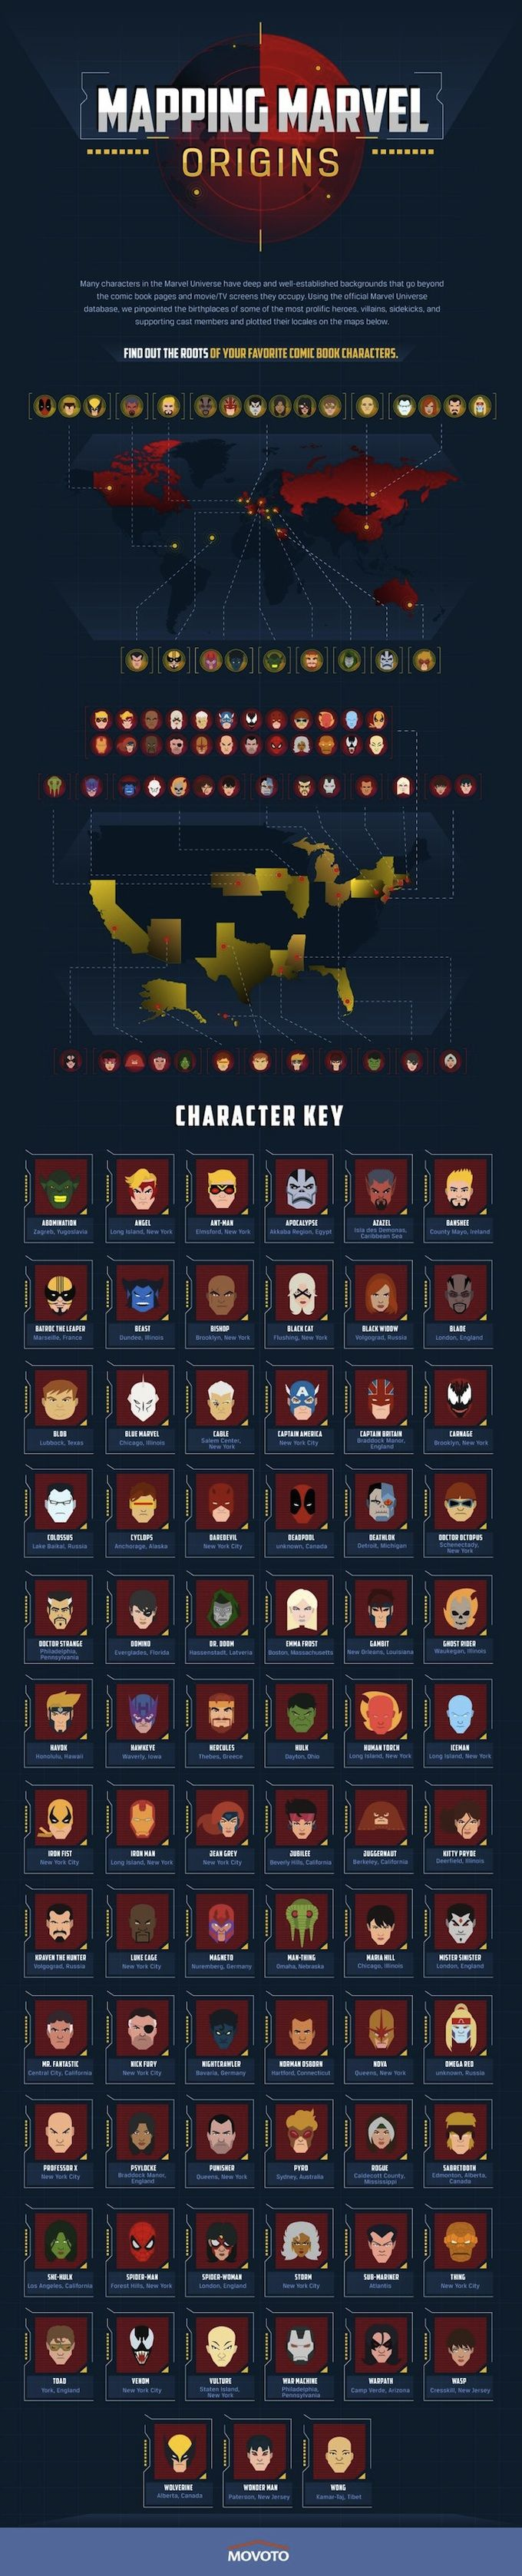 Complete List of Marvel Character Origins